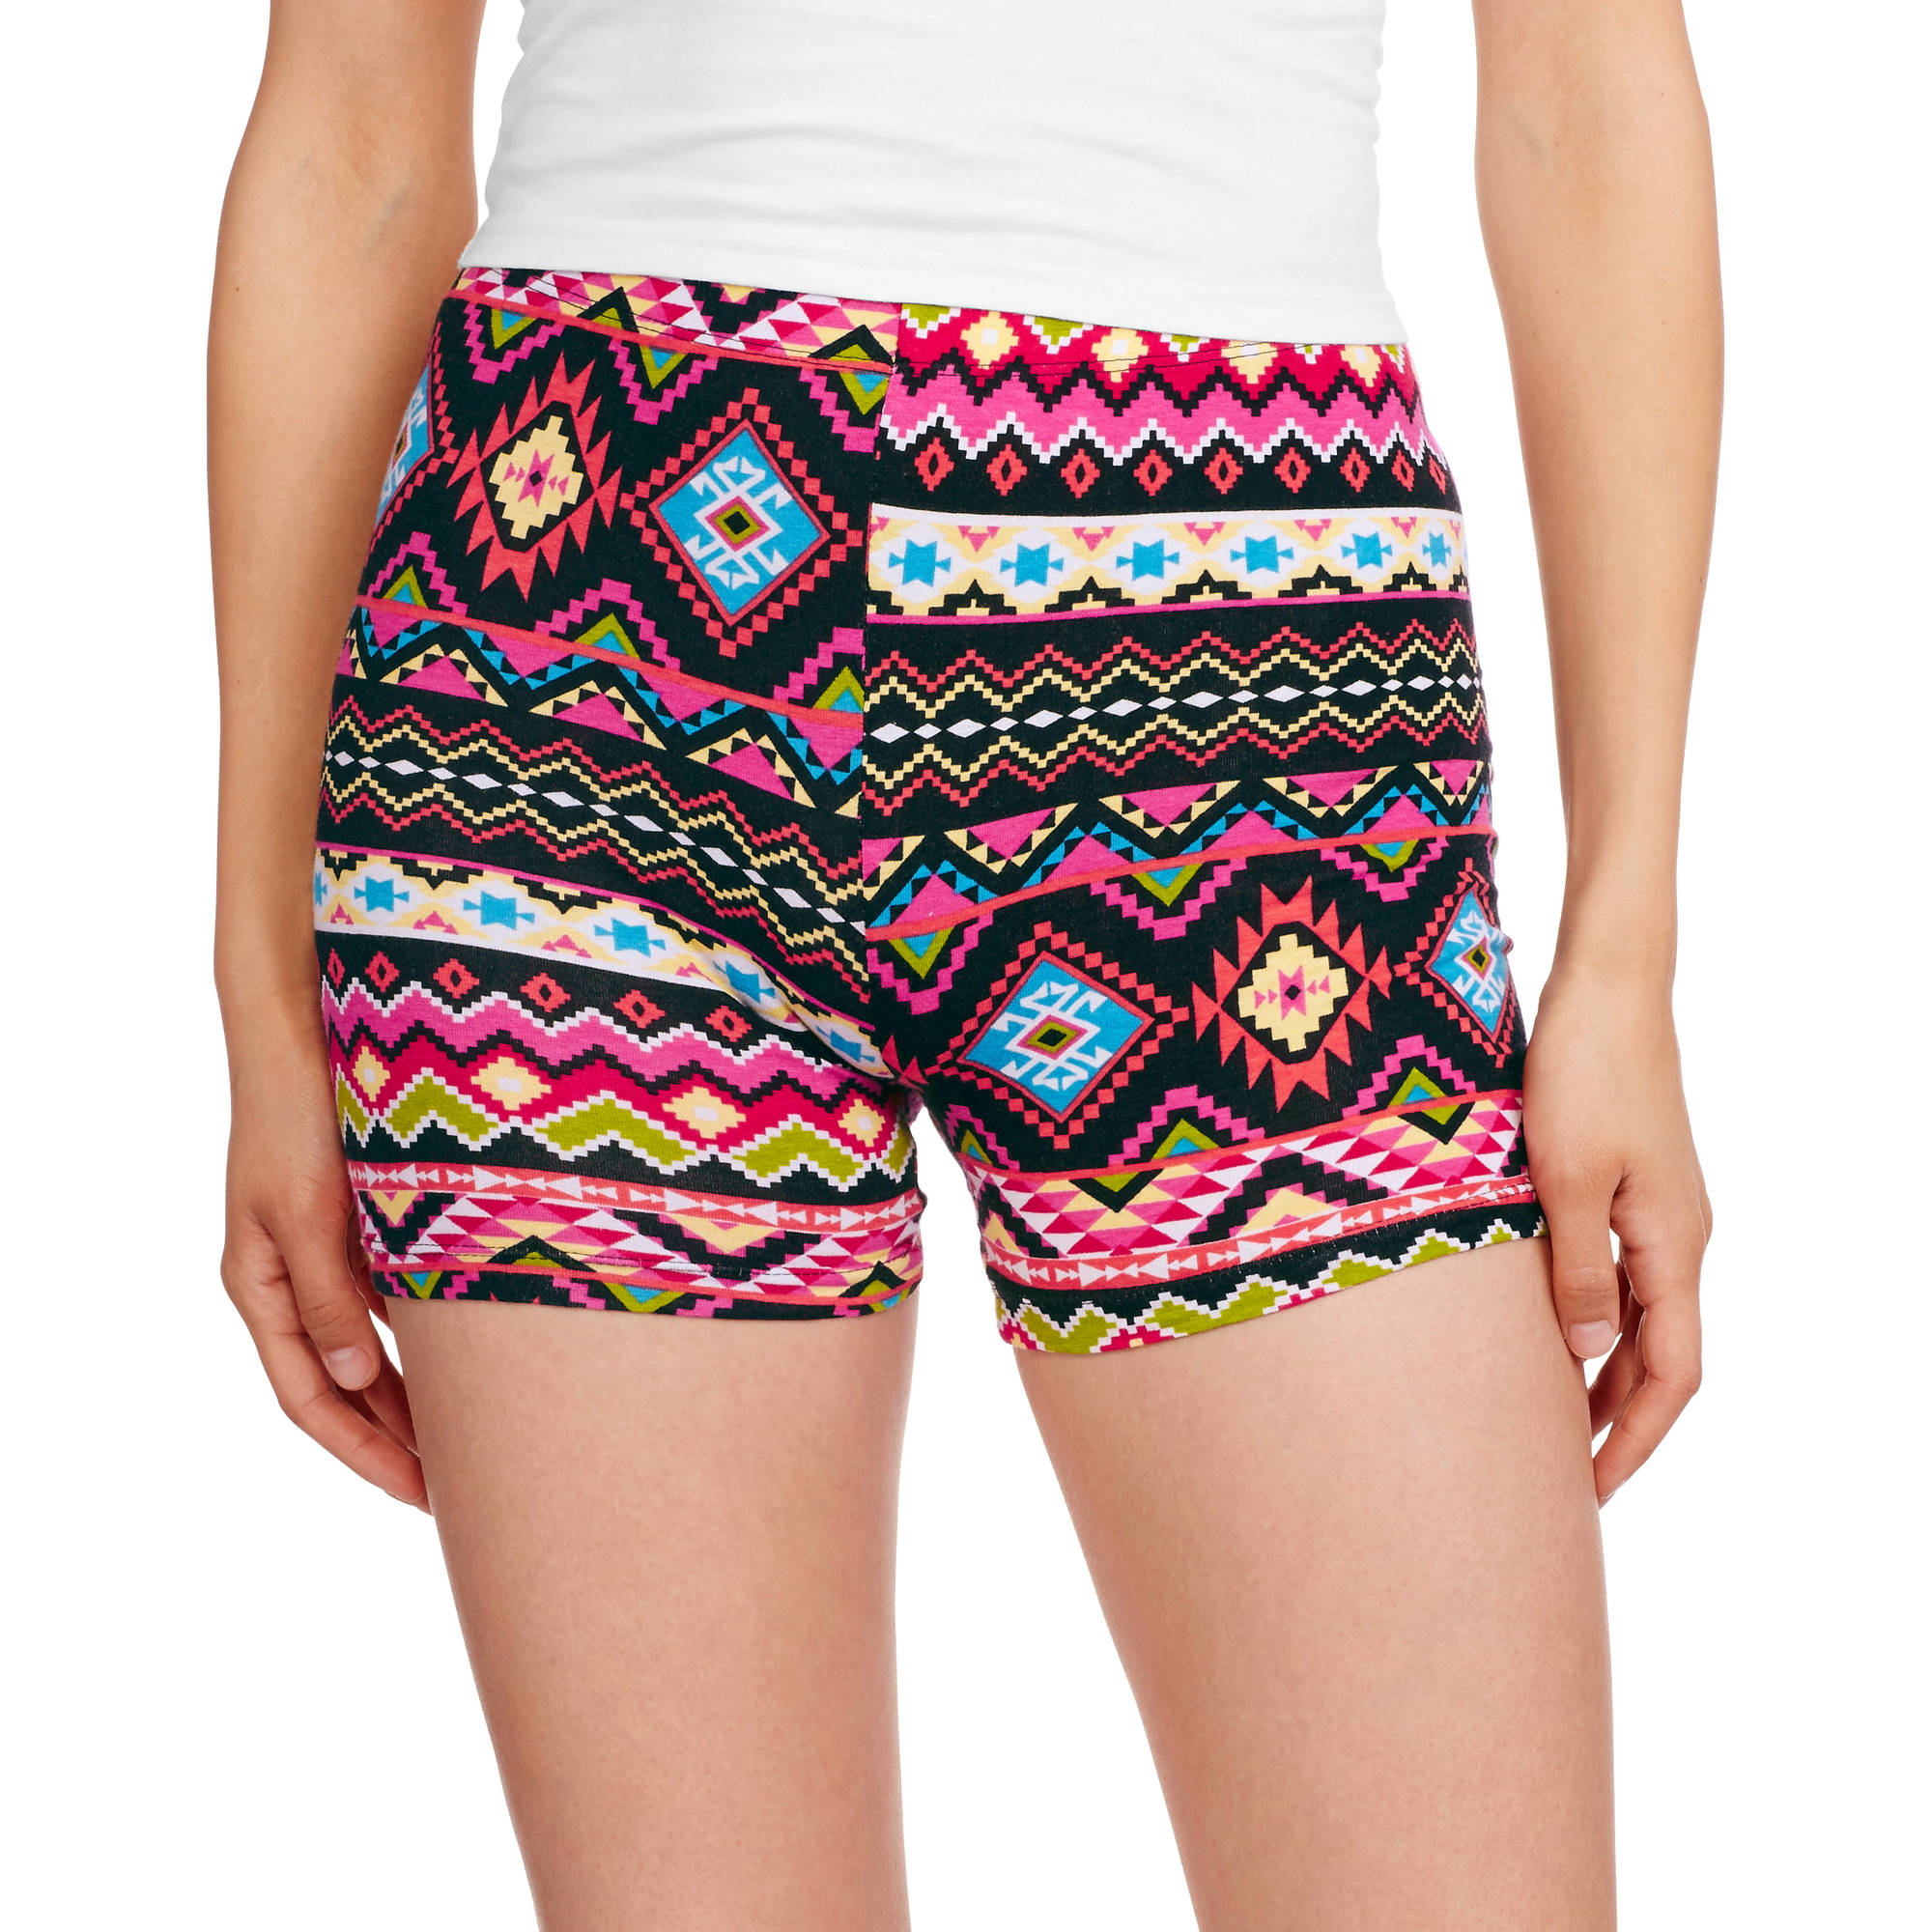 Eye Candy Juniors Printed Cotton Spandex Bike Shorts